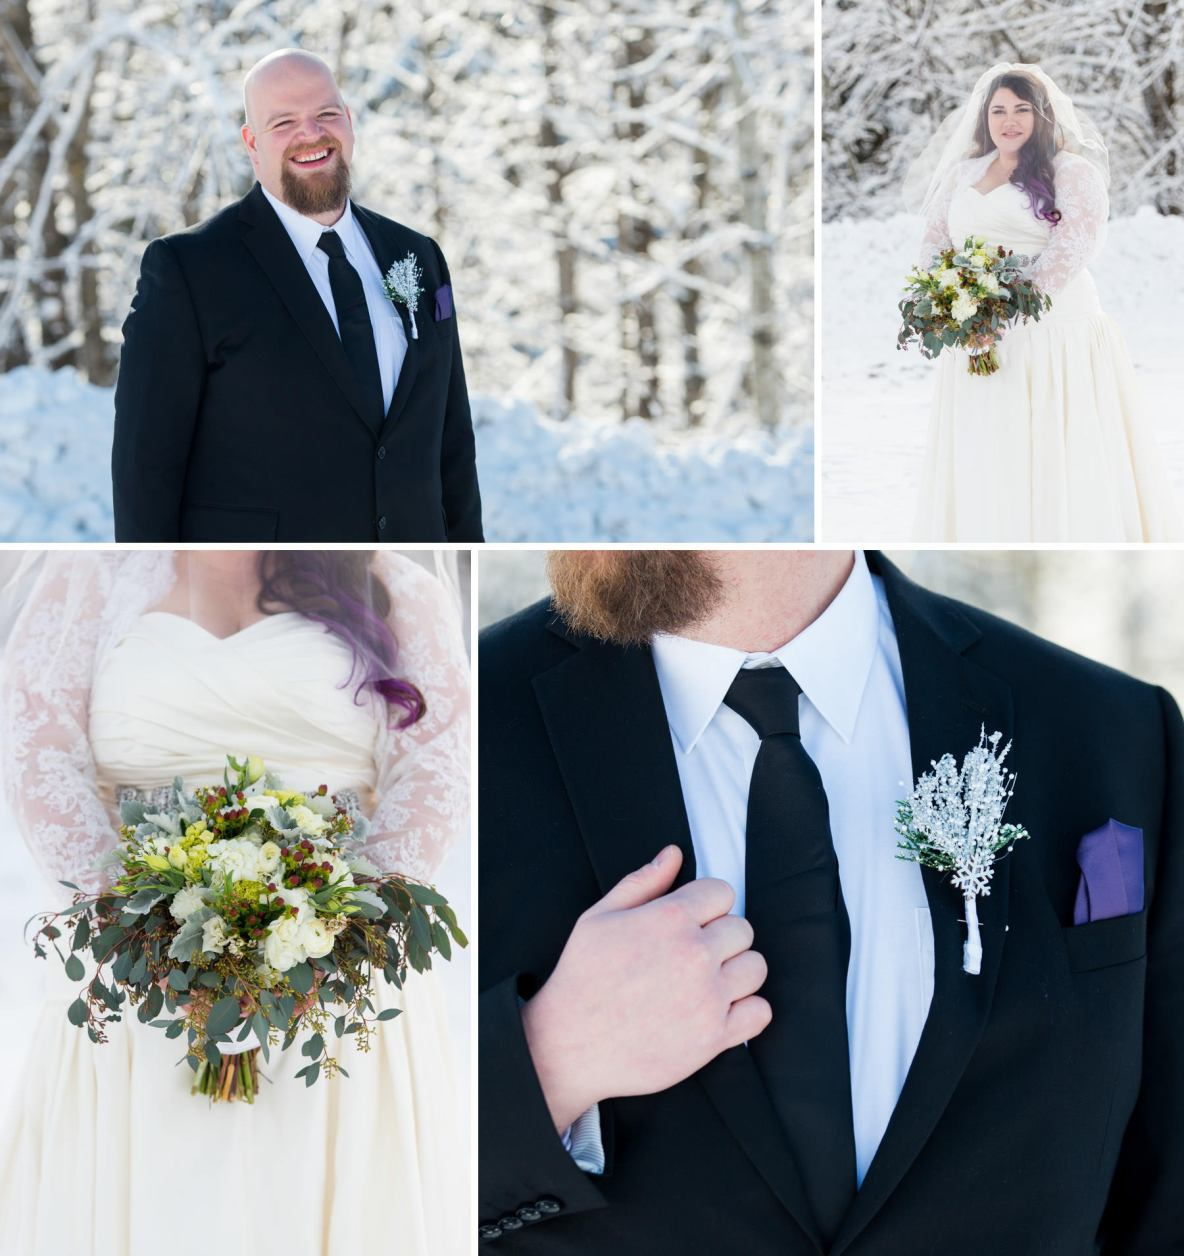 Winter Wonderland Wedding in Duluth, MN.